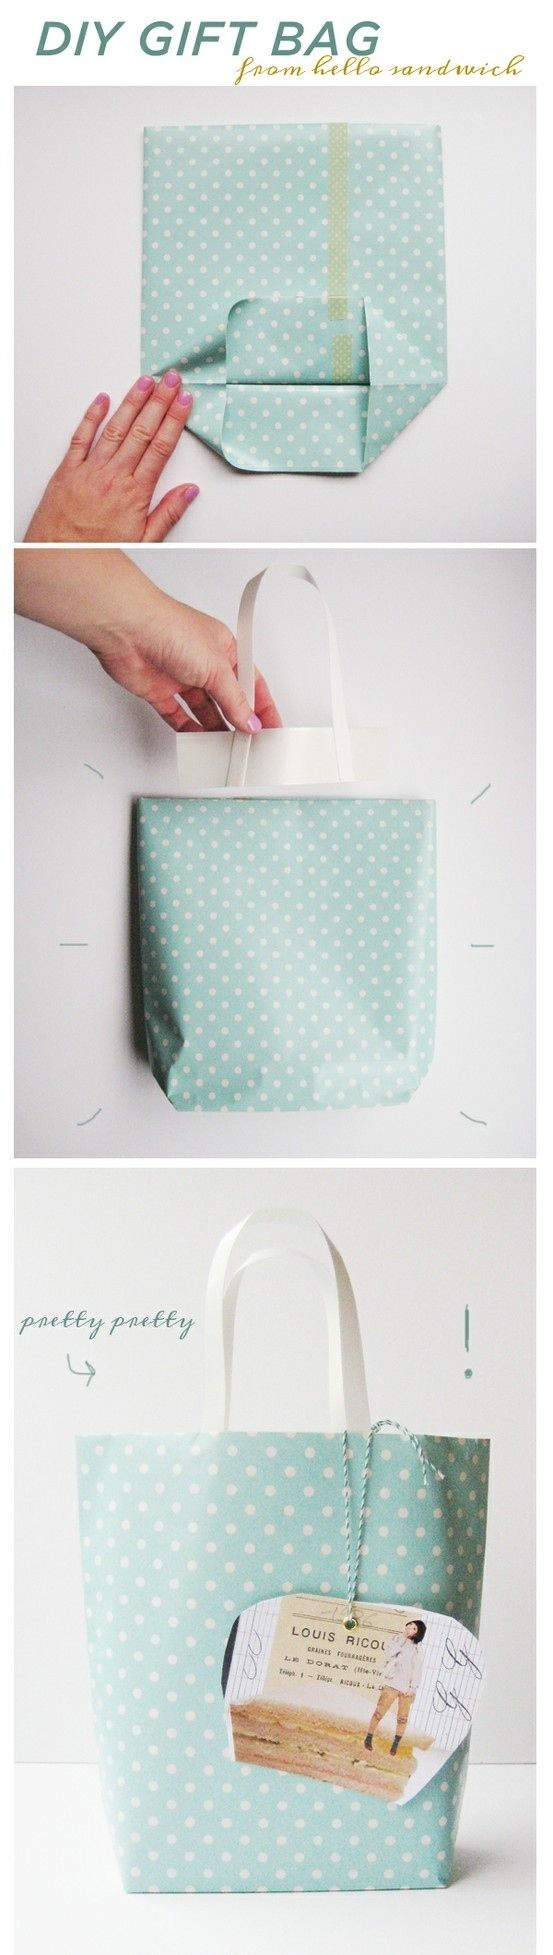 Make your own gift bag: great idea!